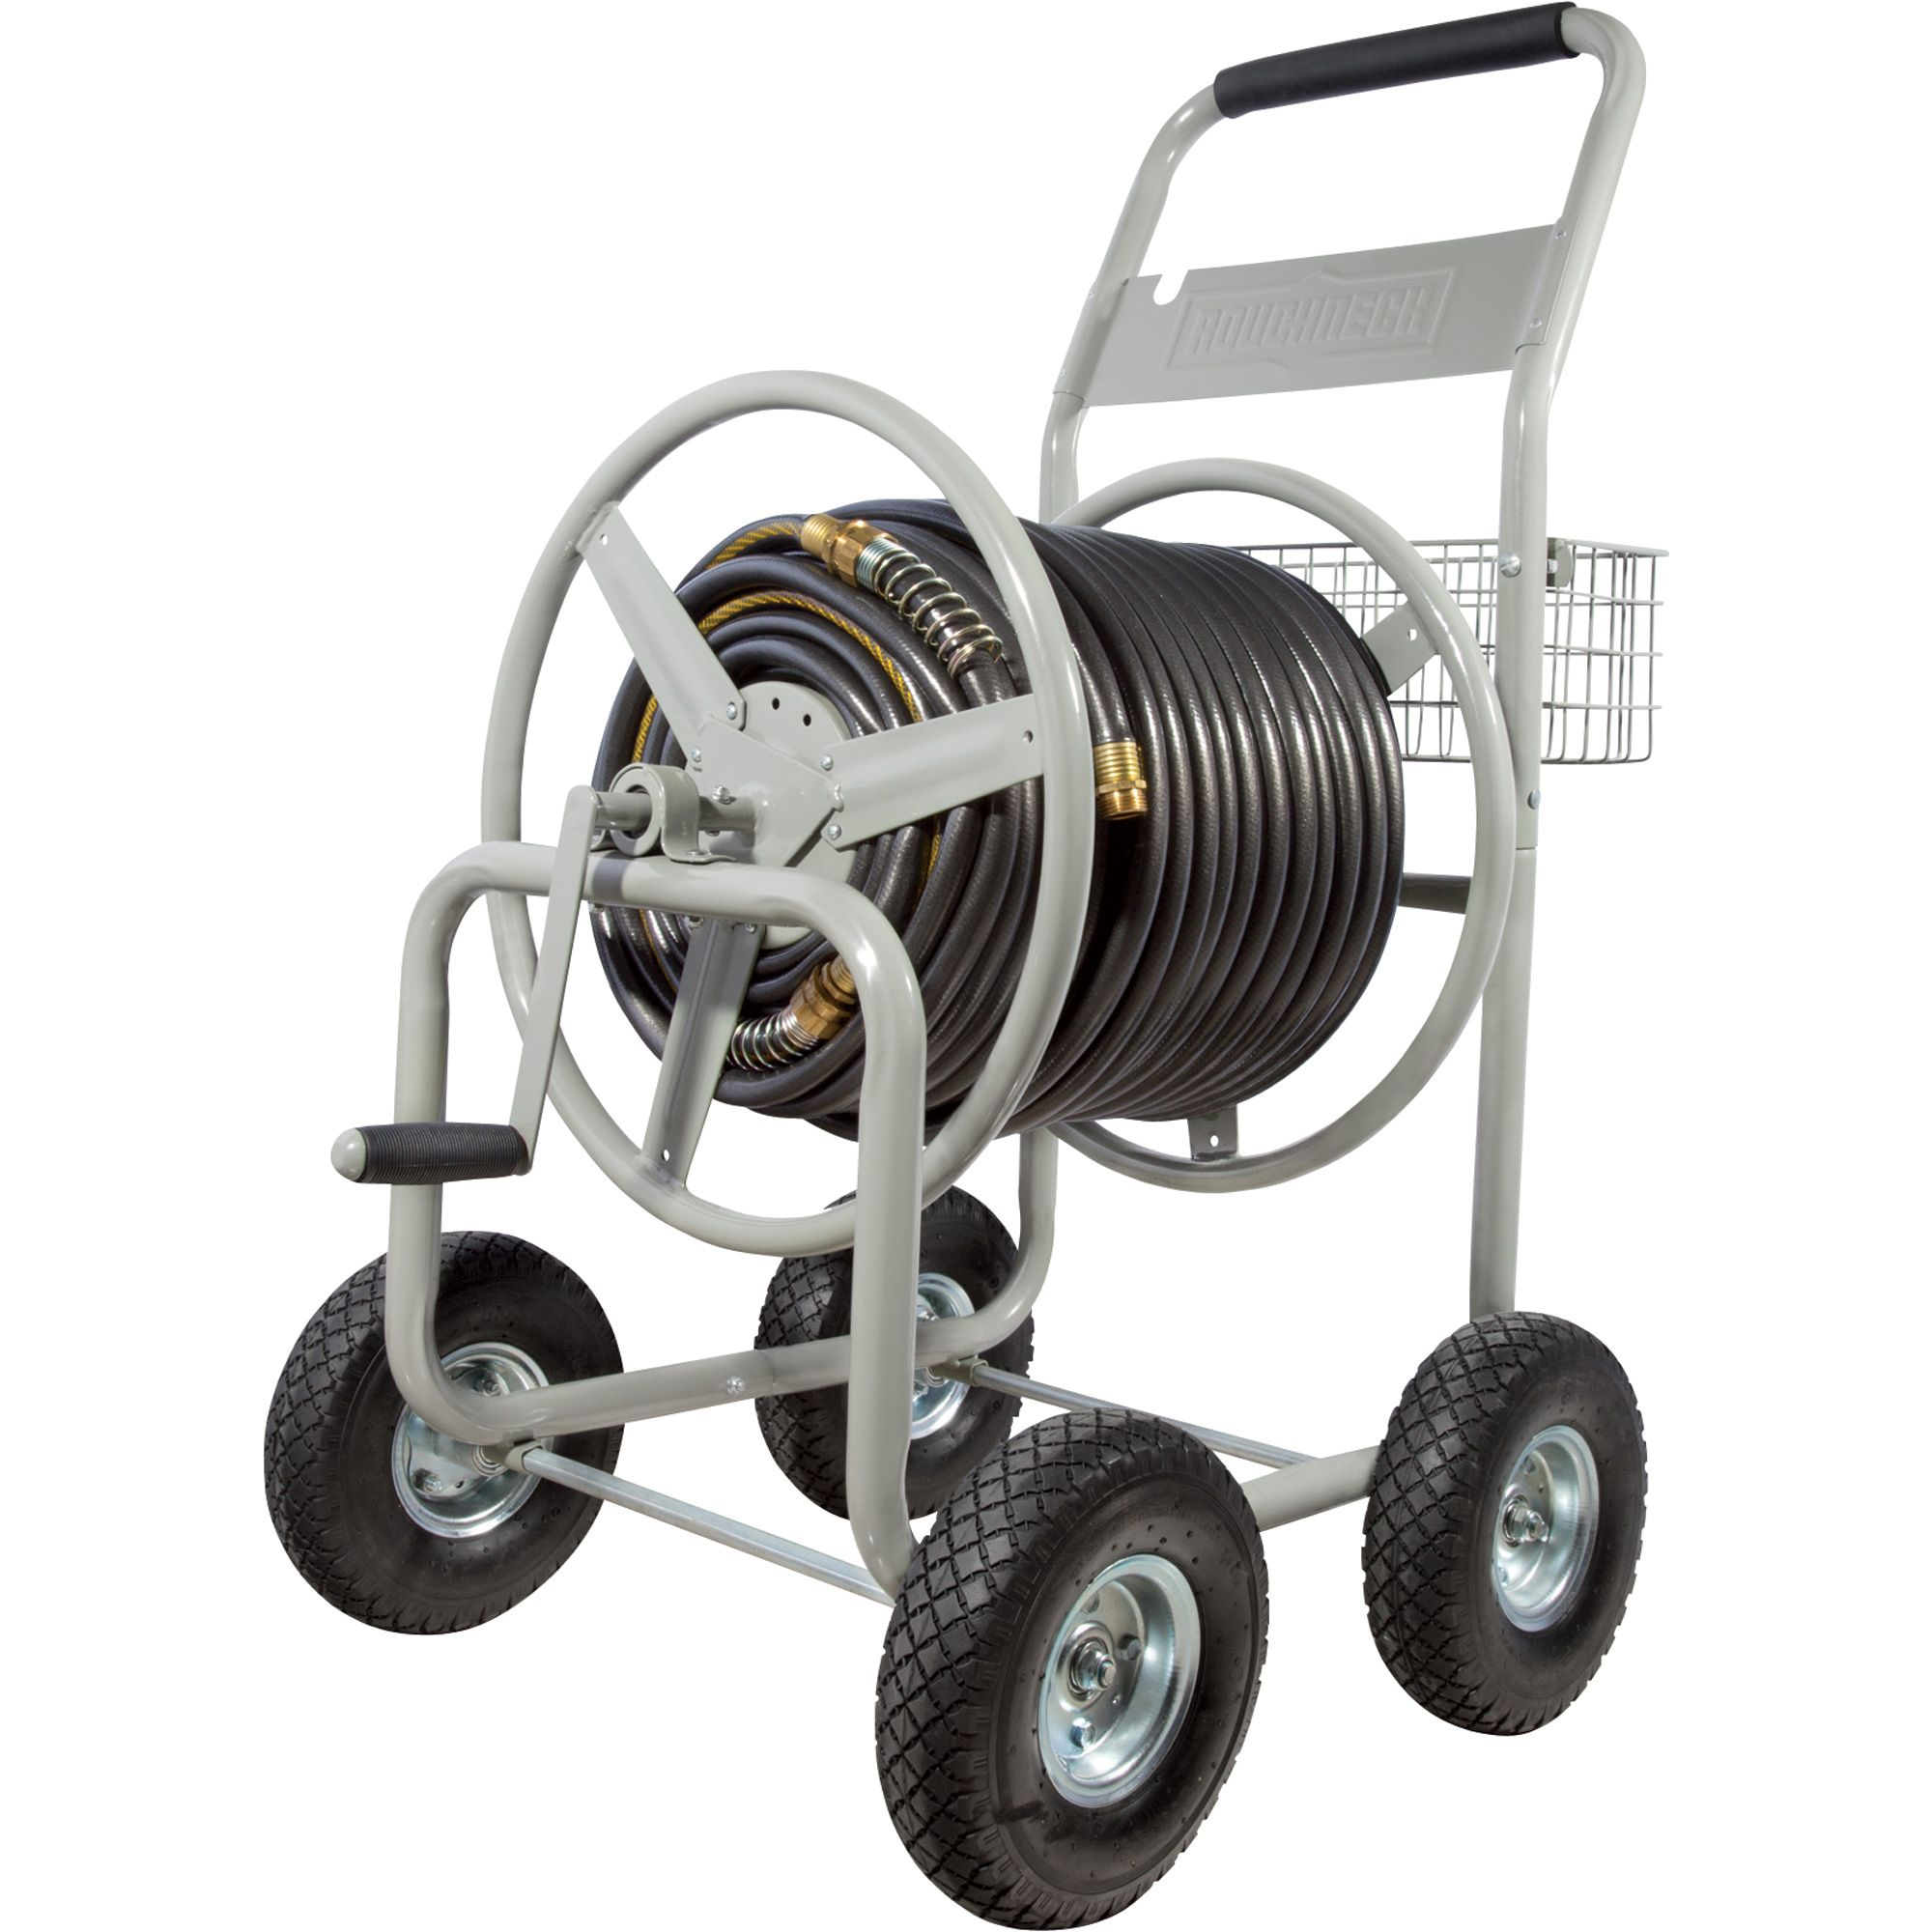 Hose Reel Canada Google Search Hose Reels Garden